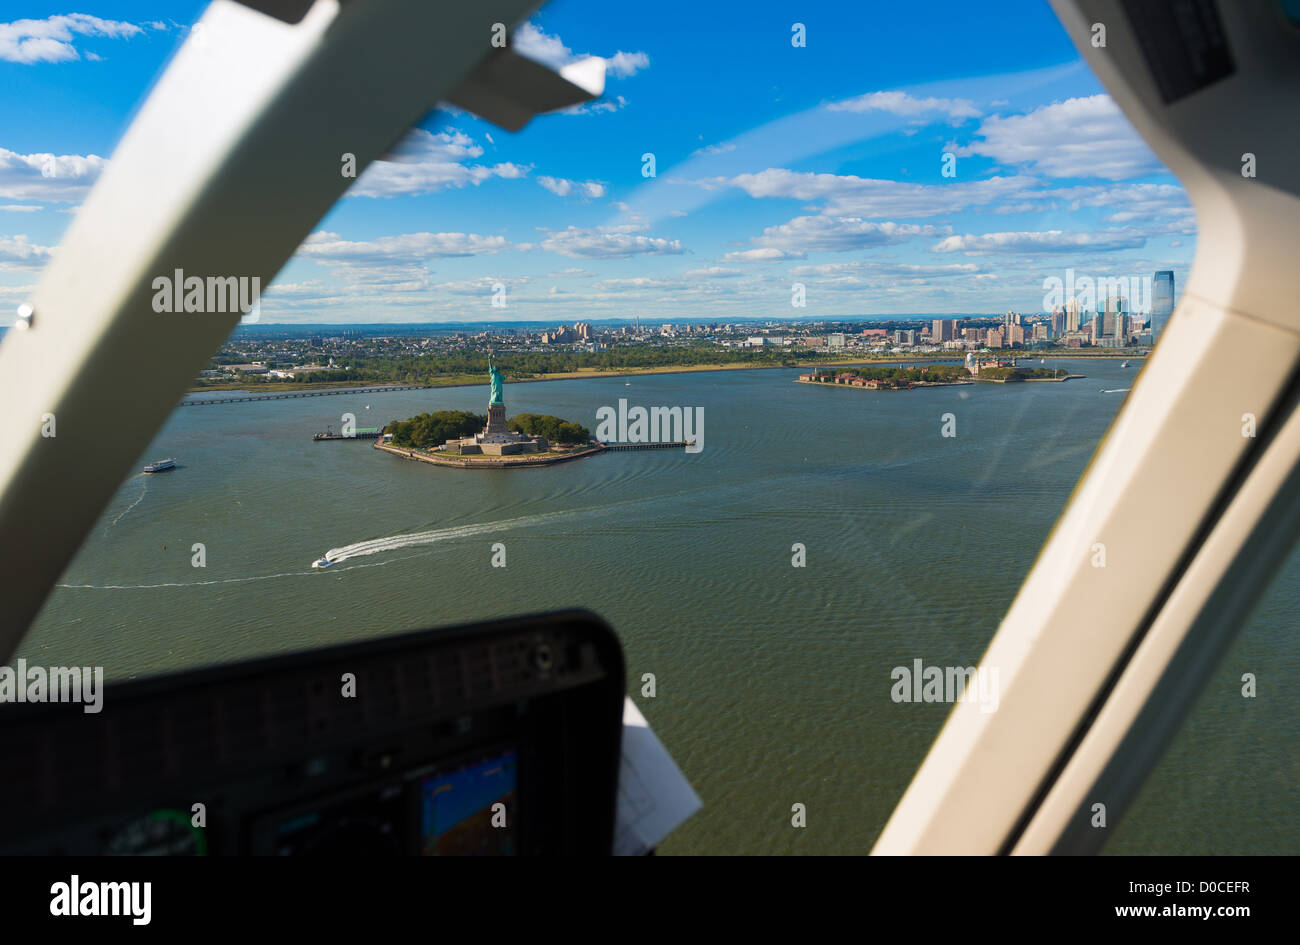 Statue of Liberty and Hudson river view from the window of helicopter, New York - Stock Image